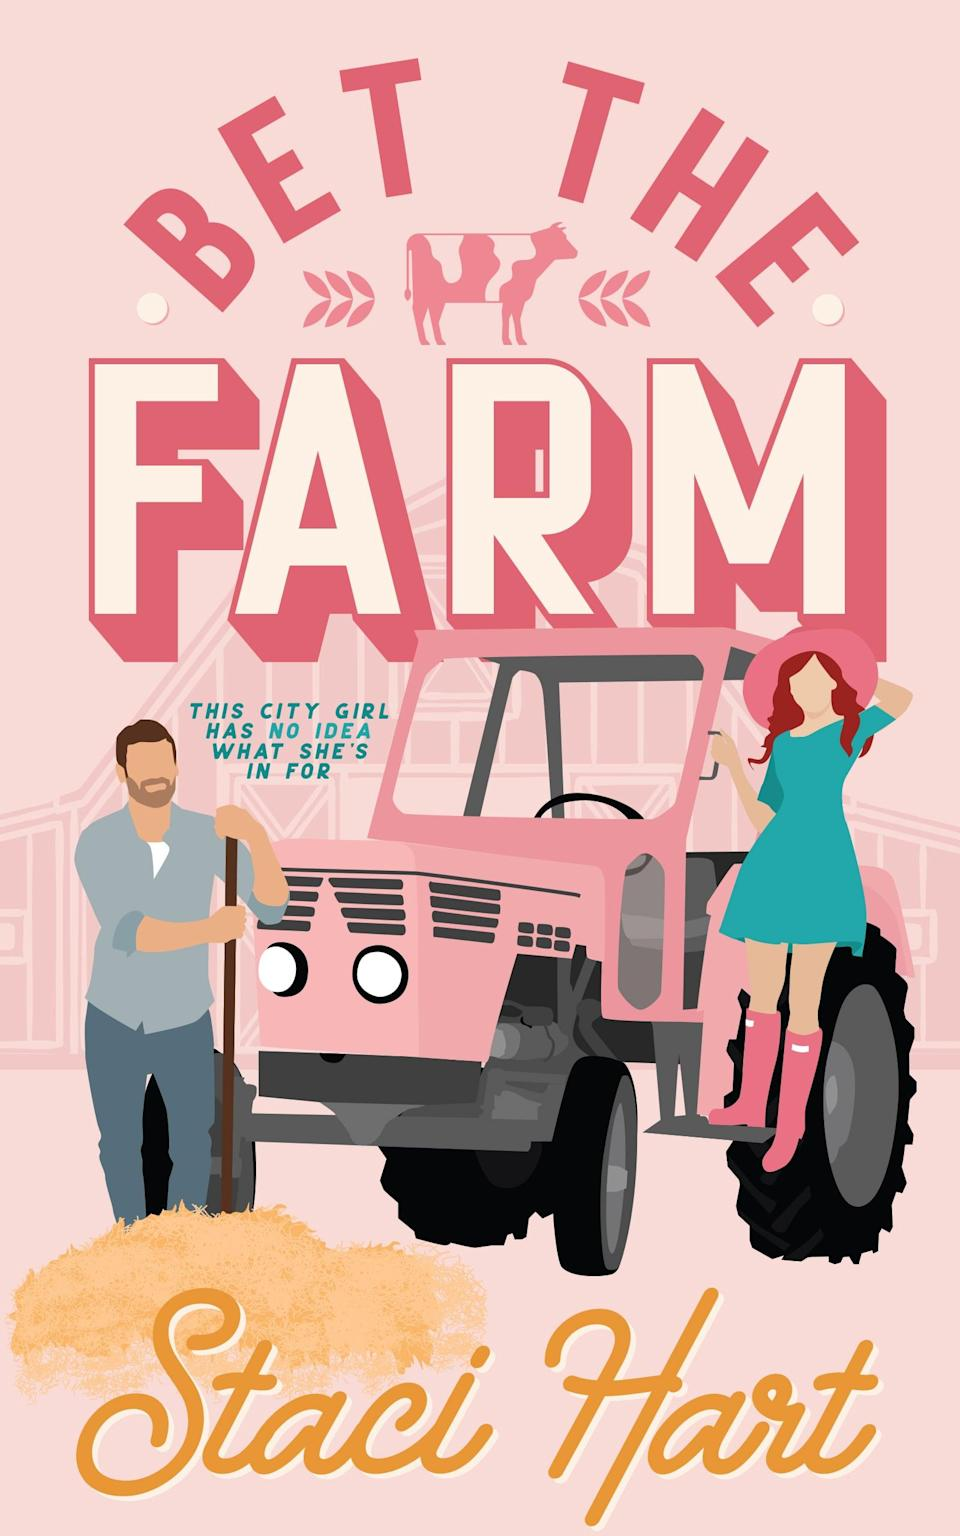 <p><span><strong>Bet the Farm</strong></span> by Staci Hart is a quirky rom-com that centers on a quest to save a dairy farm. Olivia and Jake both inherit half of Brent Farm, but neither wants to work for the other. With no compromise in sight they strike a deal: Olivia has until the end of the summer to either save the farm or leave. But what neither of them anticipate is an outsider who is determined to sabotage them both. </p> <p><em>Out Feb. 23</em></p>